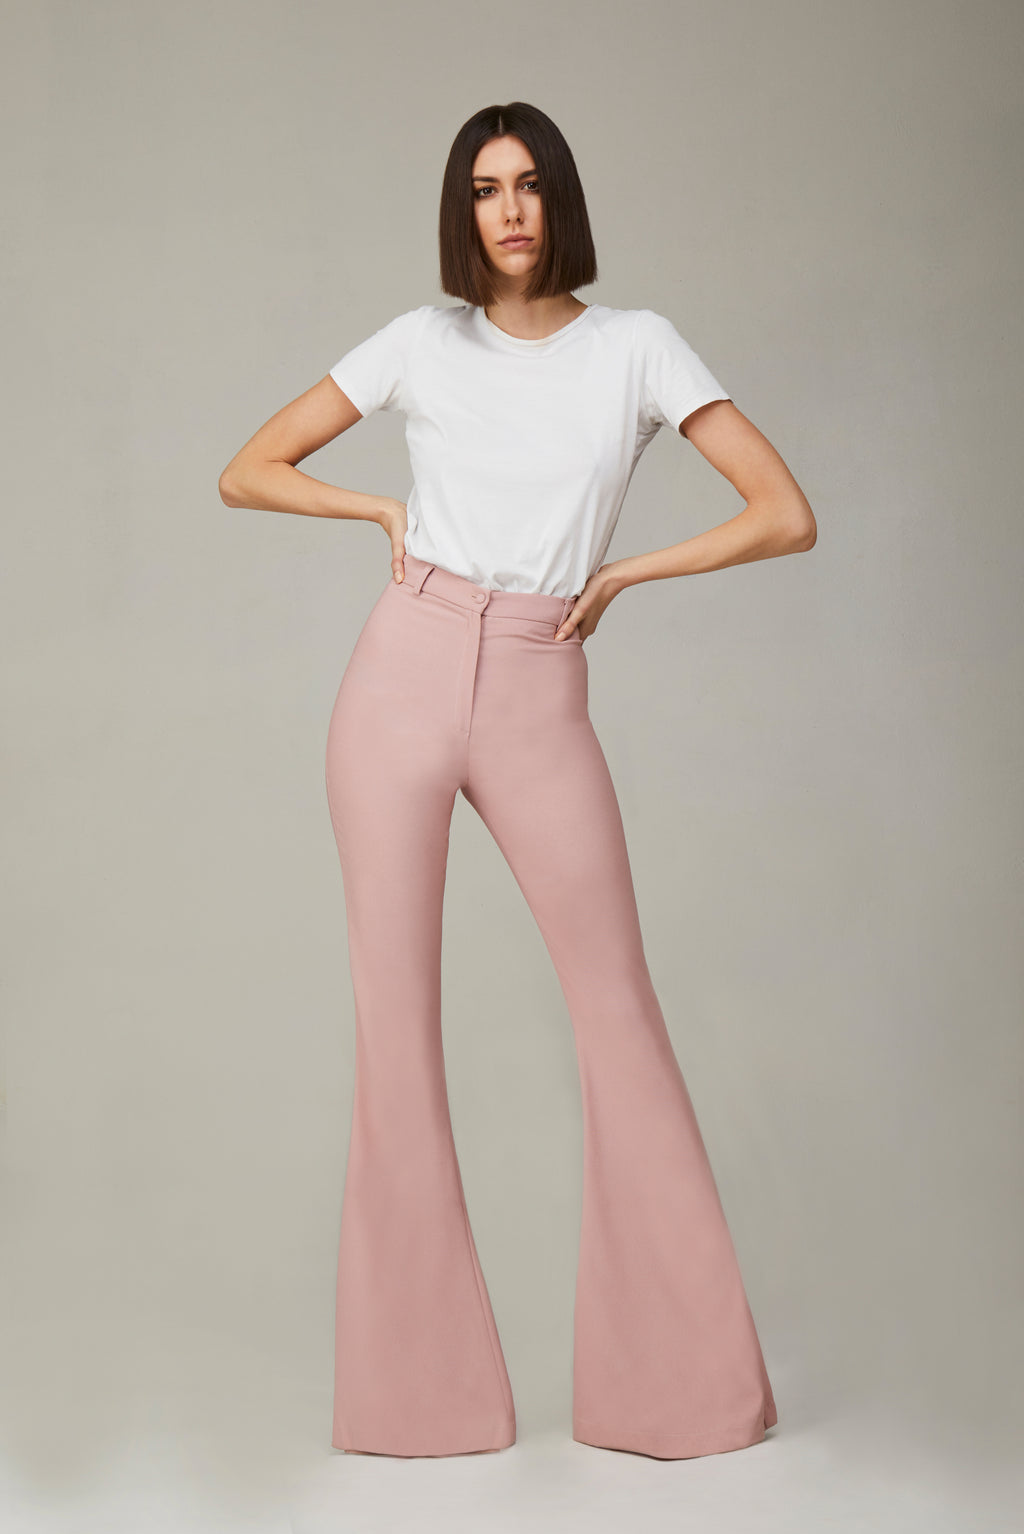 The Powder Pink Bianca Pants